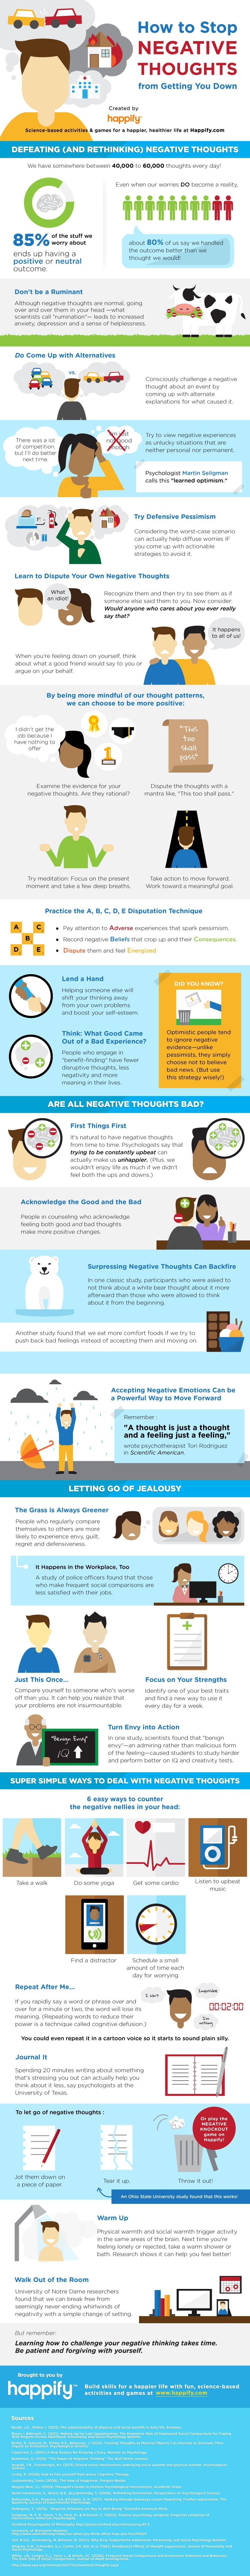 Life Coaching Negative Thoughts Infographic